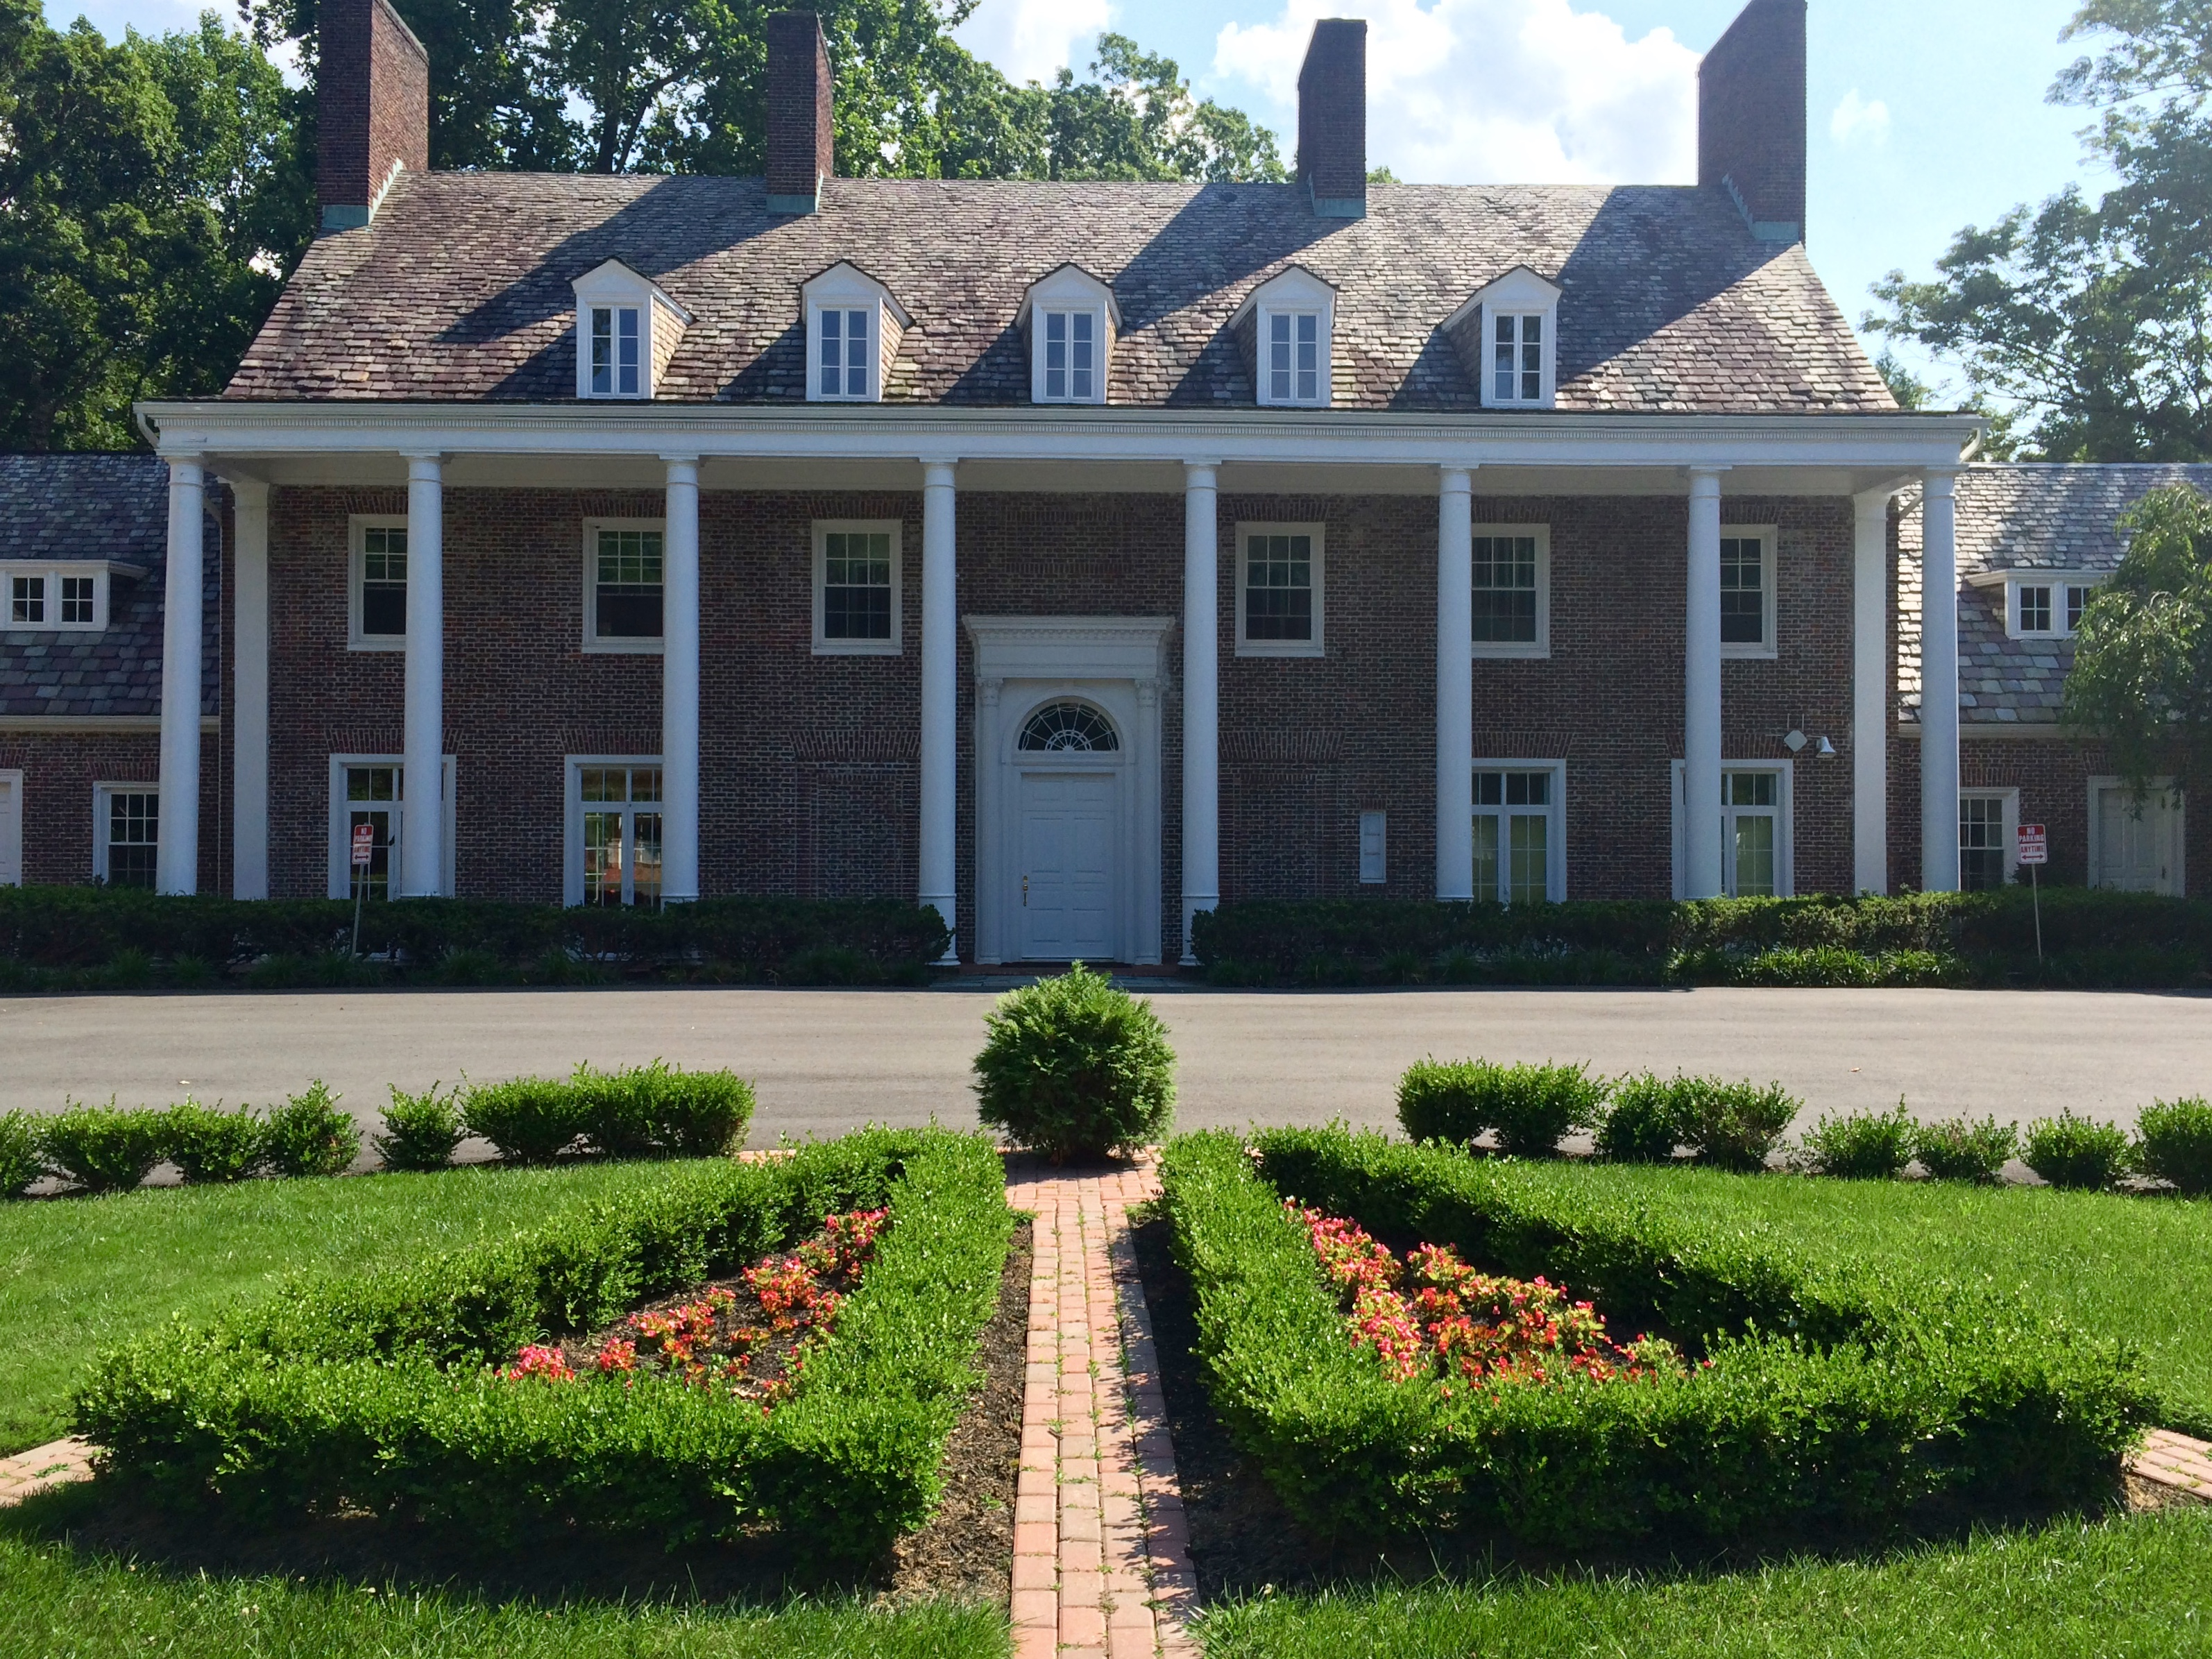 File albemarle princeton new jersey jpg wikimedia commons for The princeton house